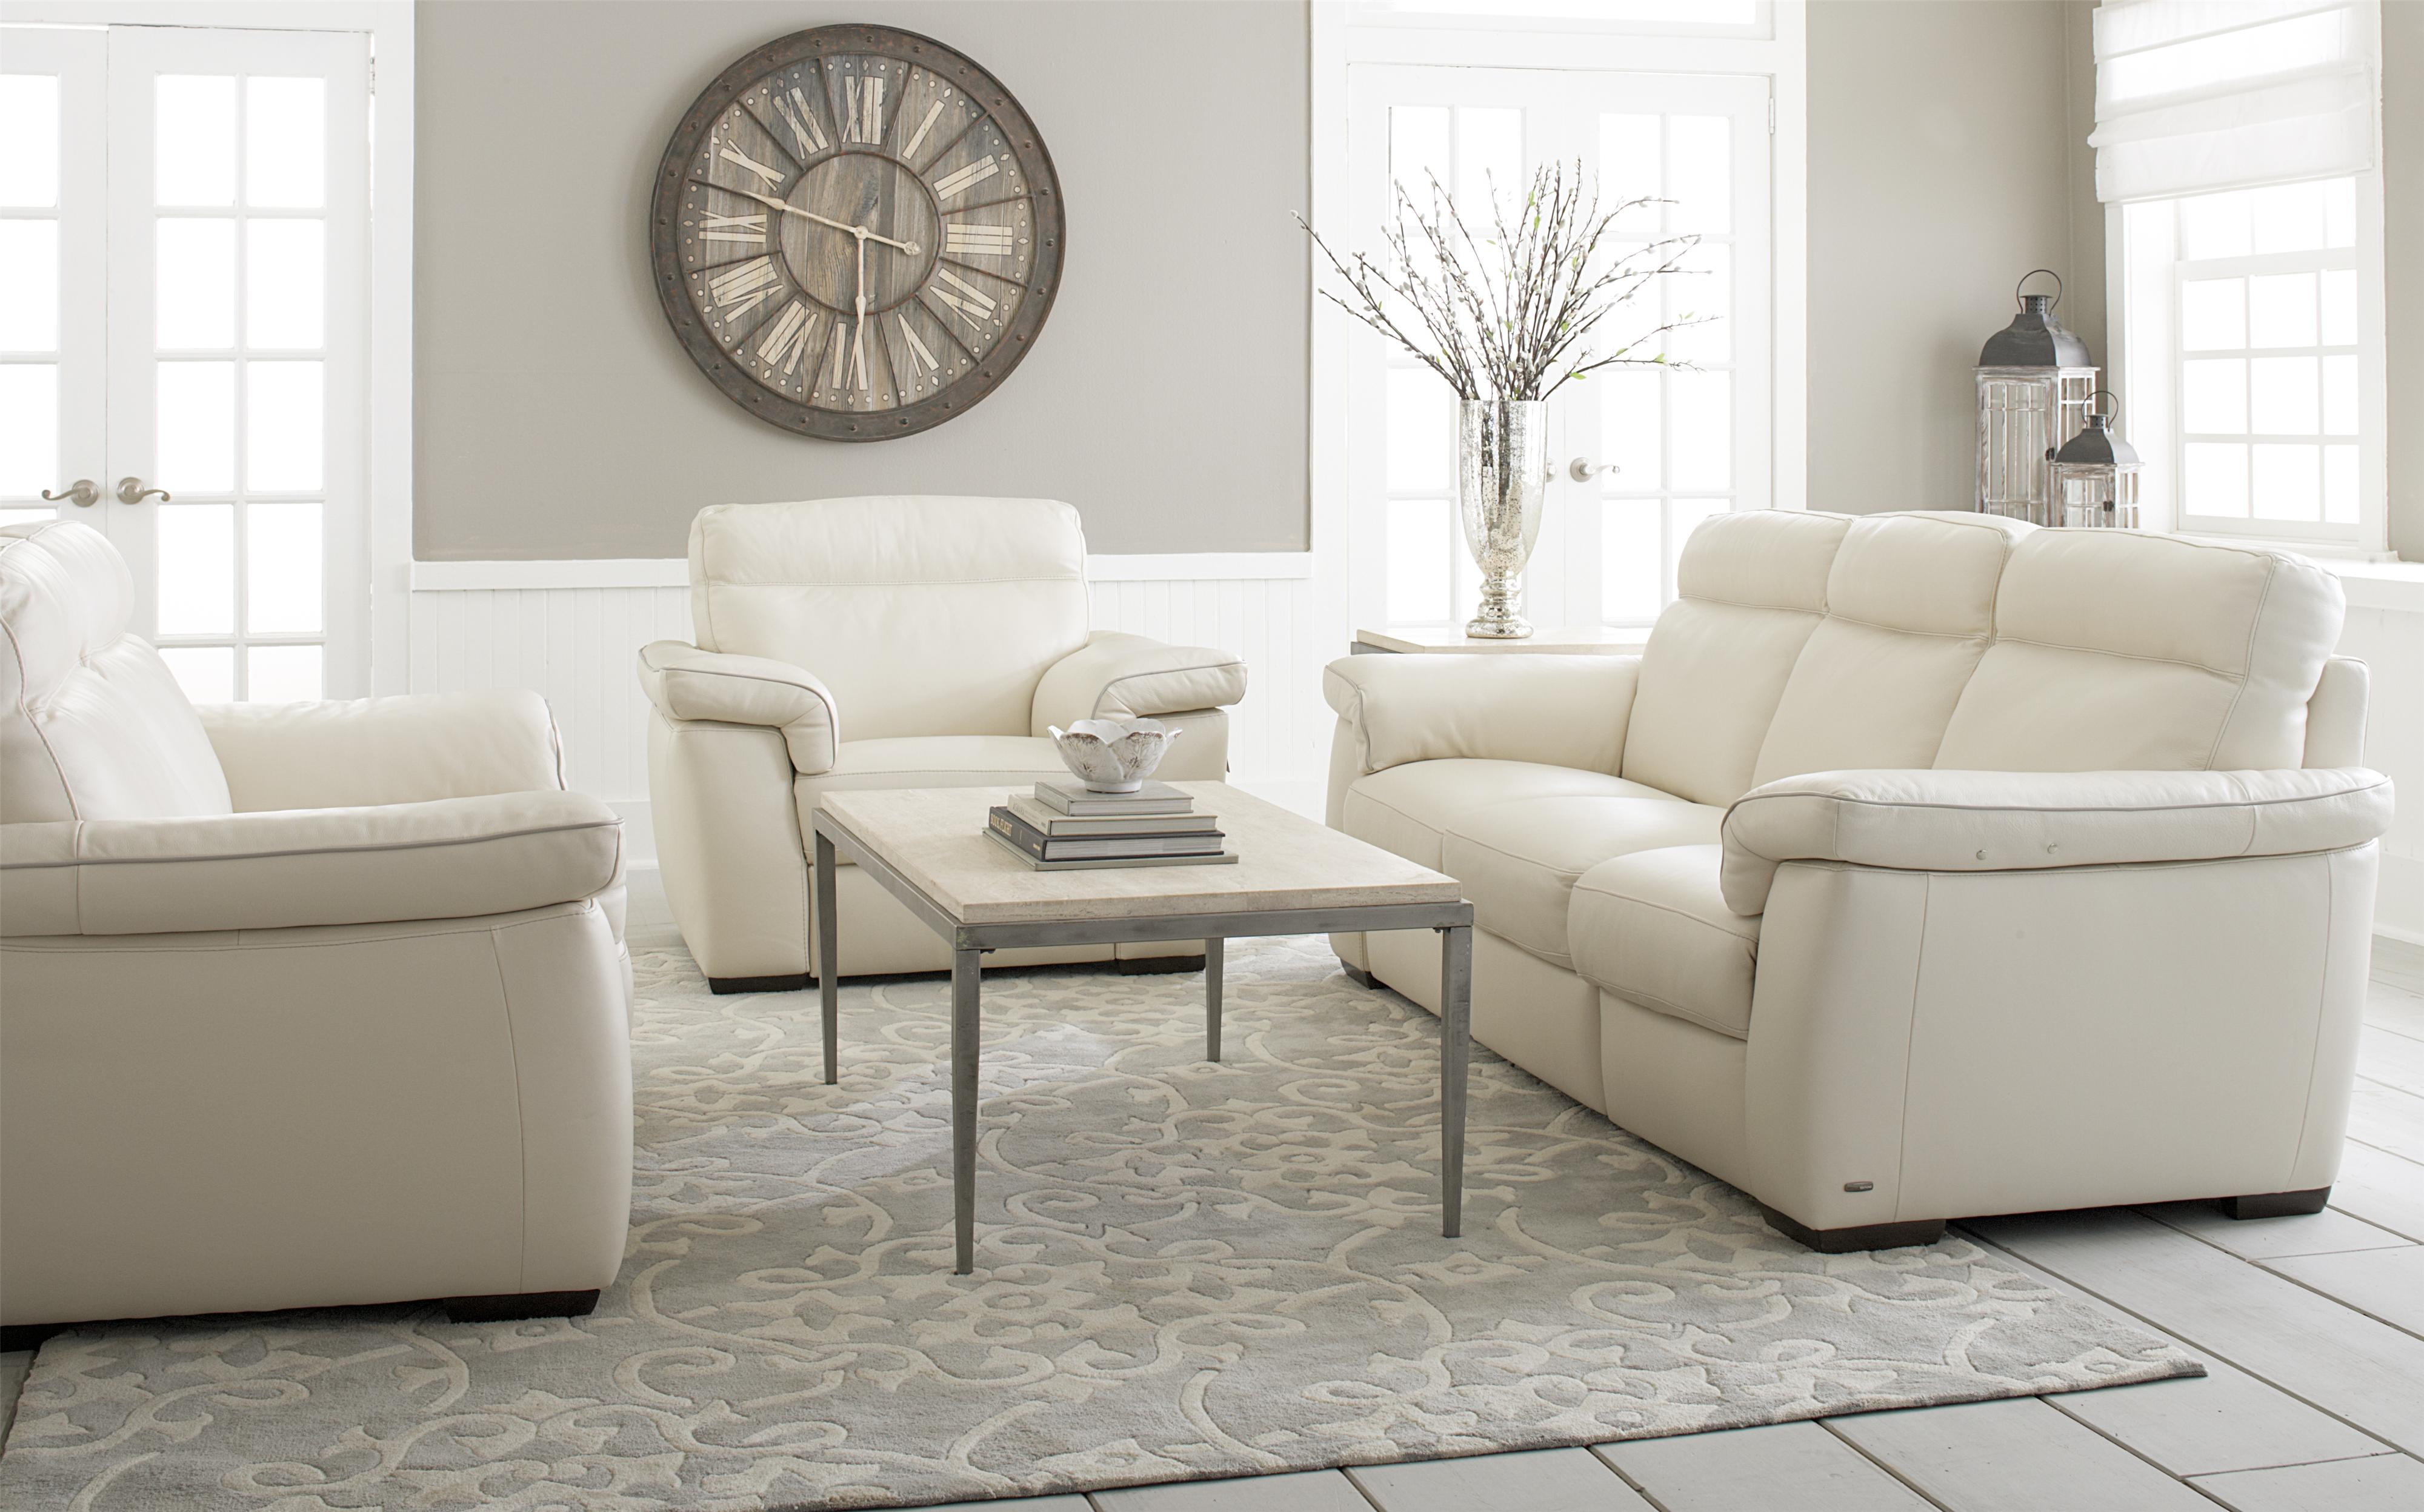 home theater reclining sectional sofa where to find affordable sofas b757 (b757) by natuzzi editions - baer's furniture ...